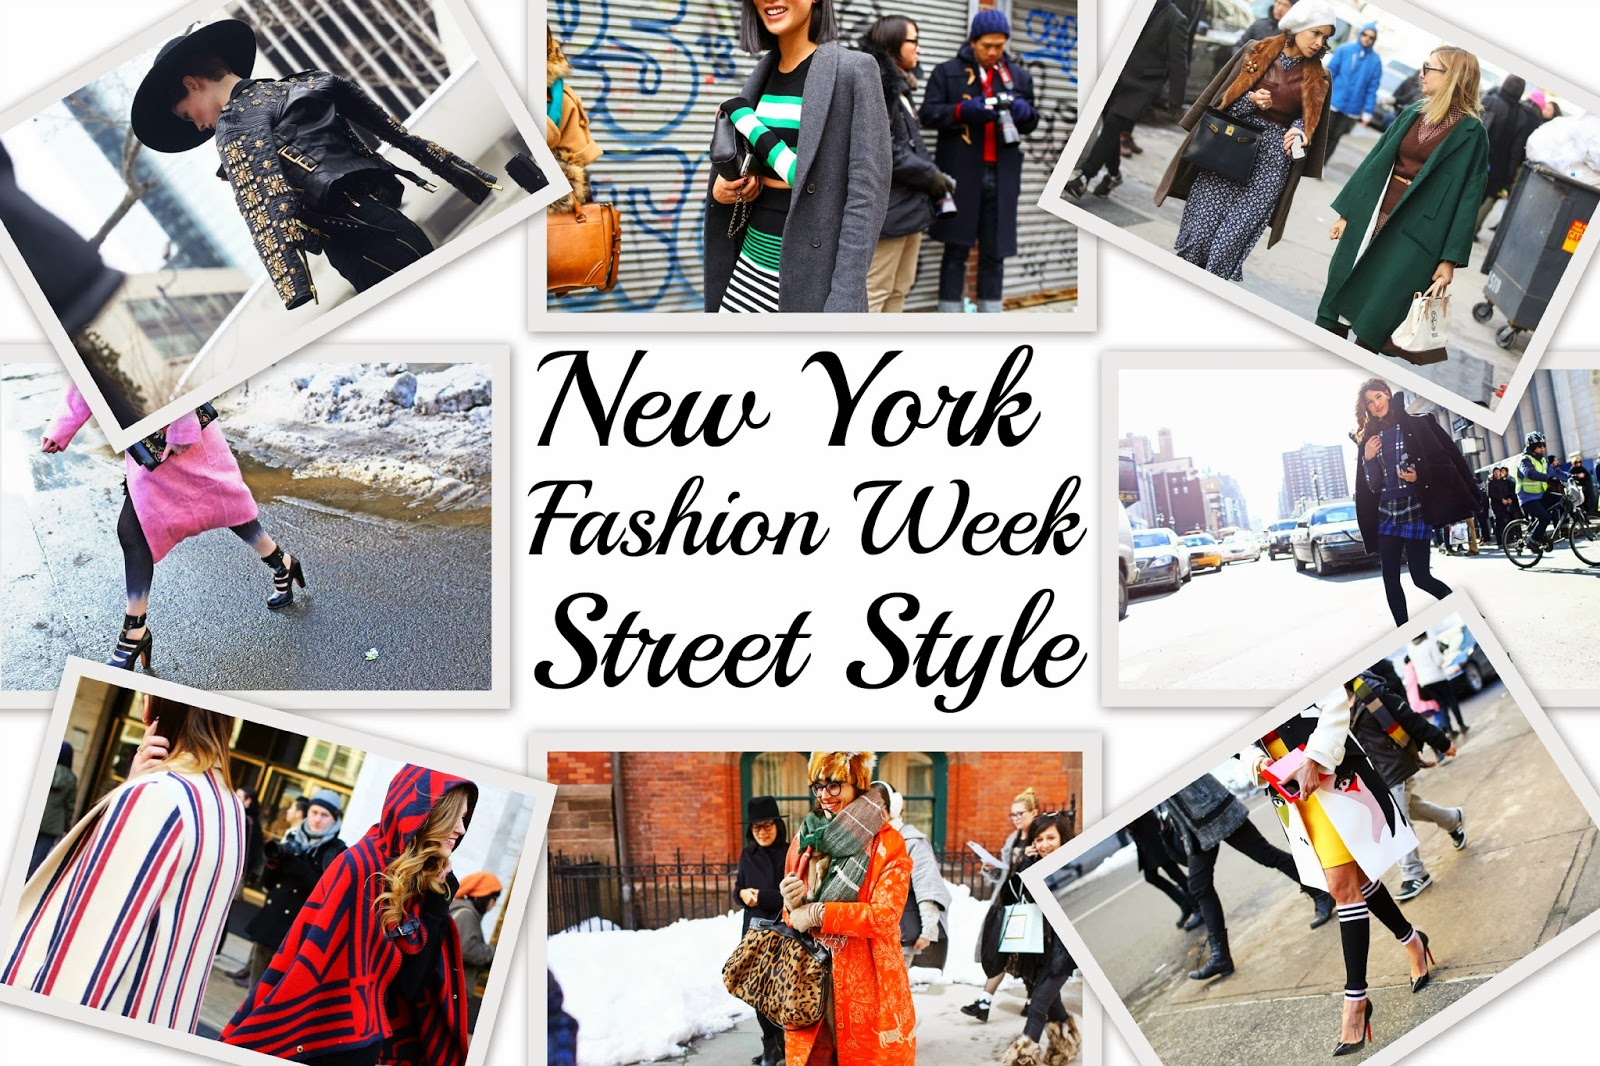 http://www.syriouslyinfashion.com/2014/02/new-york-fashion-week-street-style-show.html